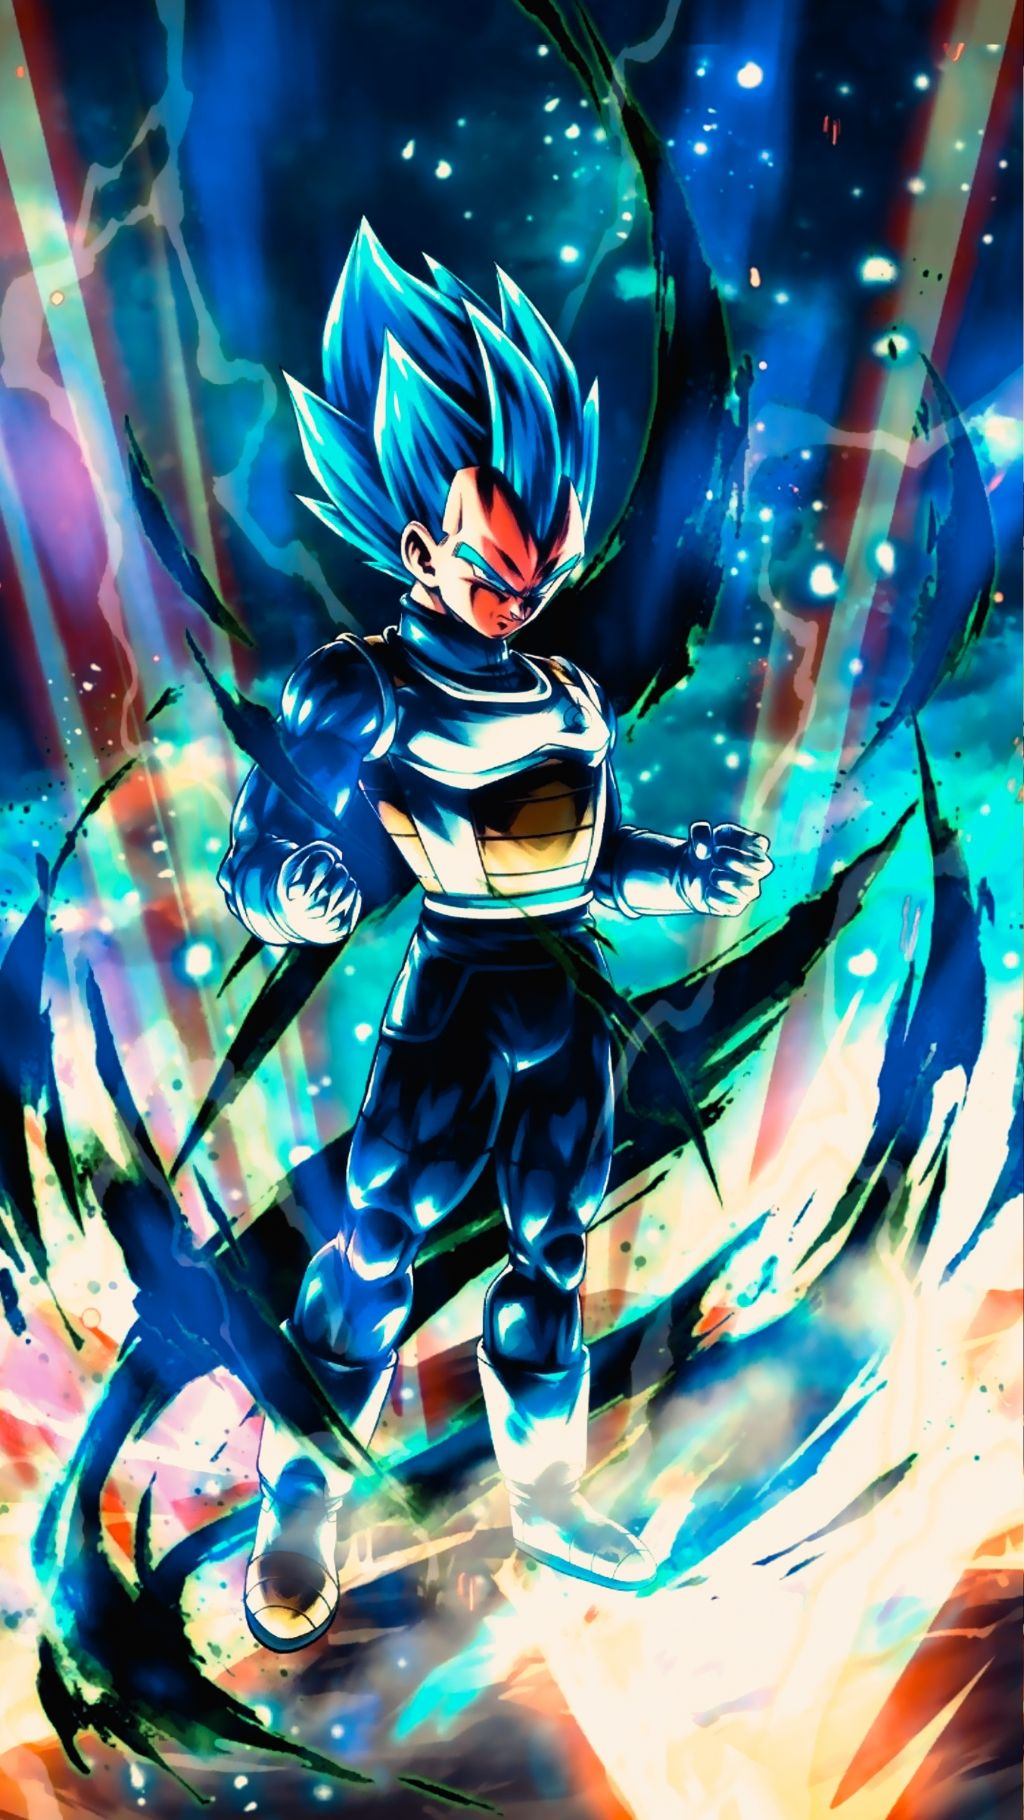 20 4k Wallpapers Of Dbz And Super For Phones Syanart Station In 2020 Dragon Ball Wallpaper Iphone Anime Dragon Ball Super Dragon Ball Artwork